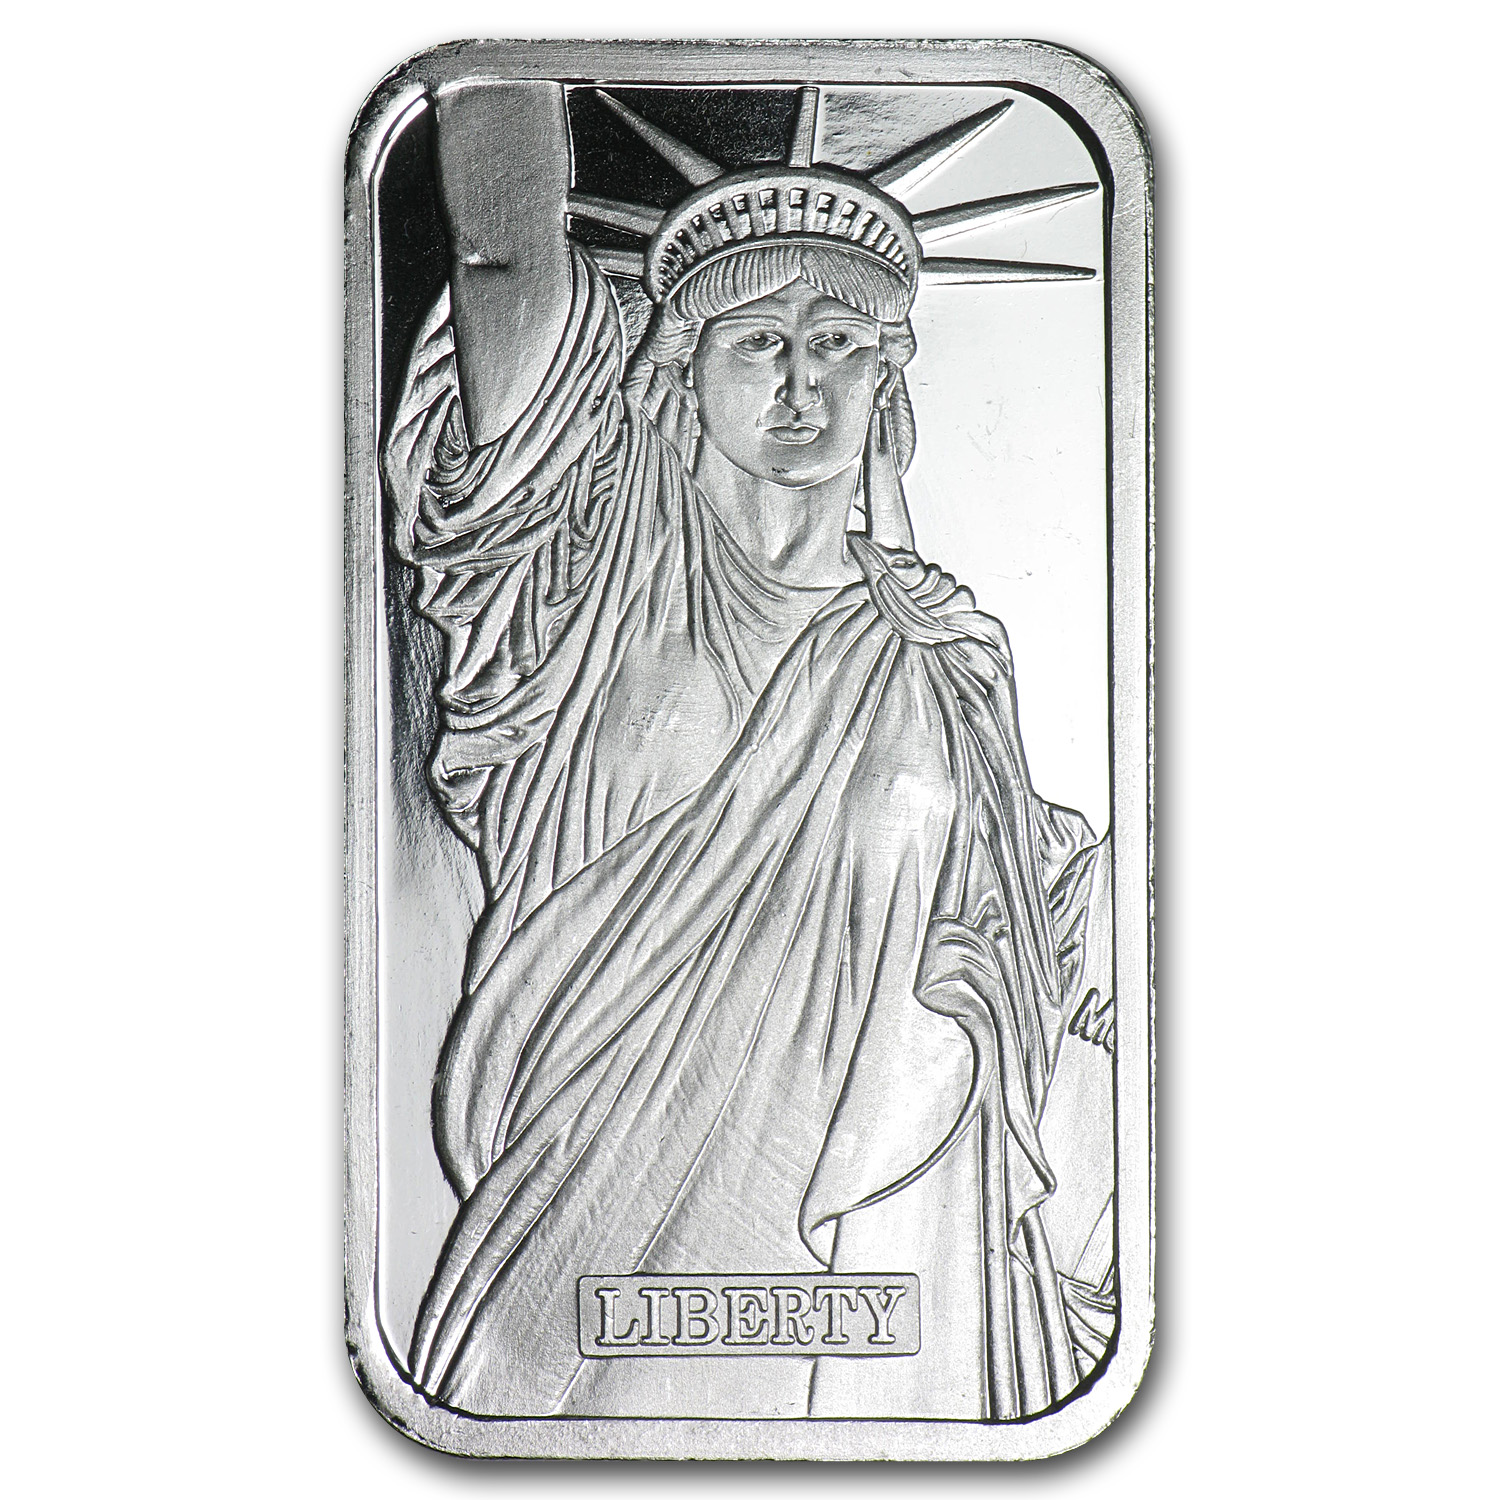 1 oz Silver Bar - Johnson Matthey (Statue of Liberty, MTB)